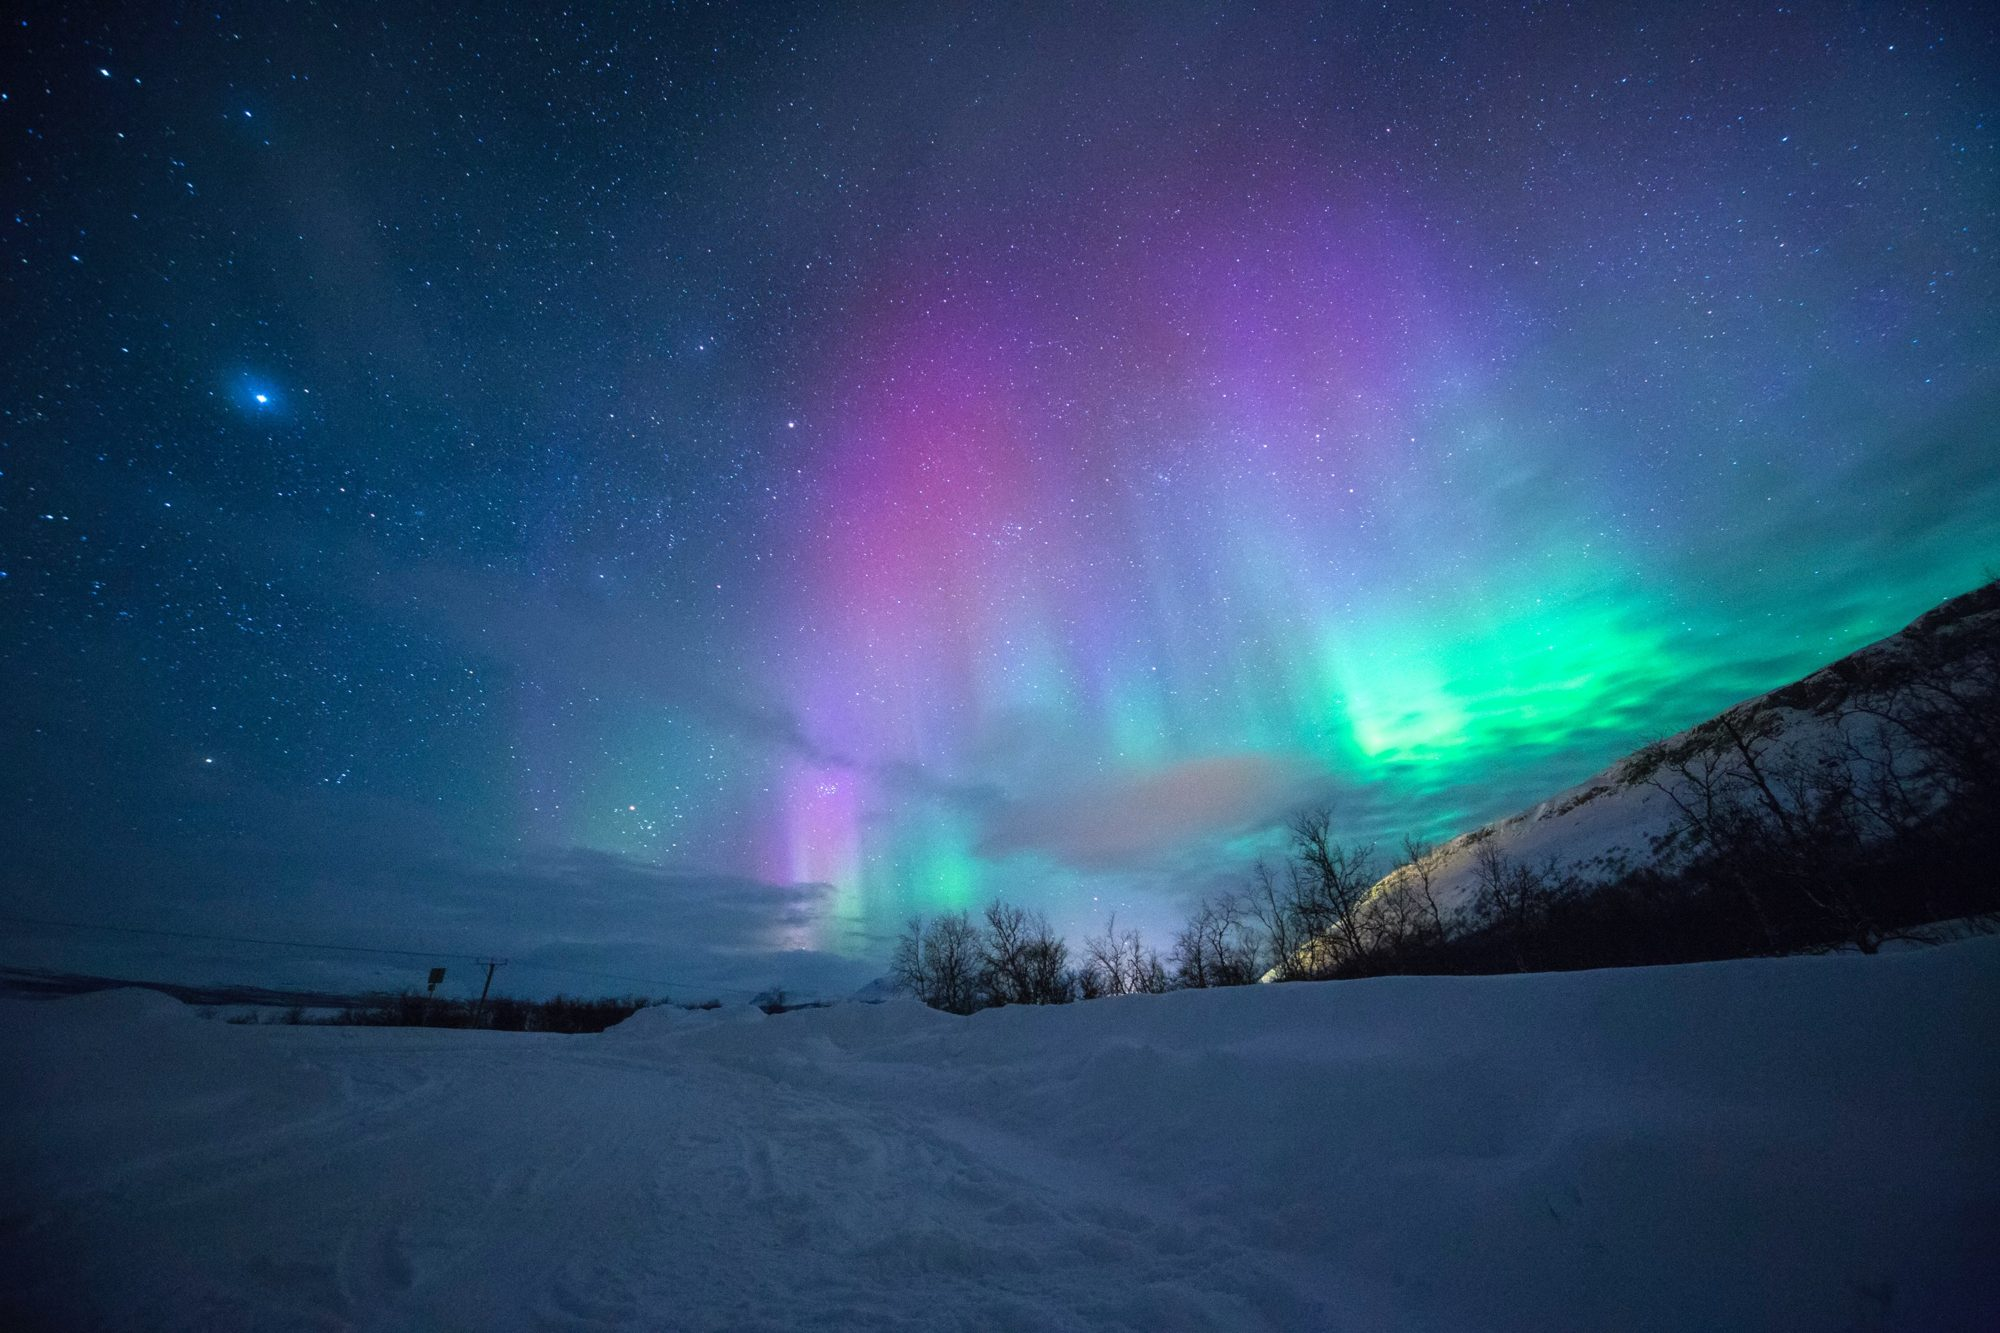 Aurora Borealis near Tromsø, Norway